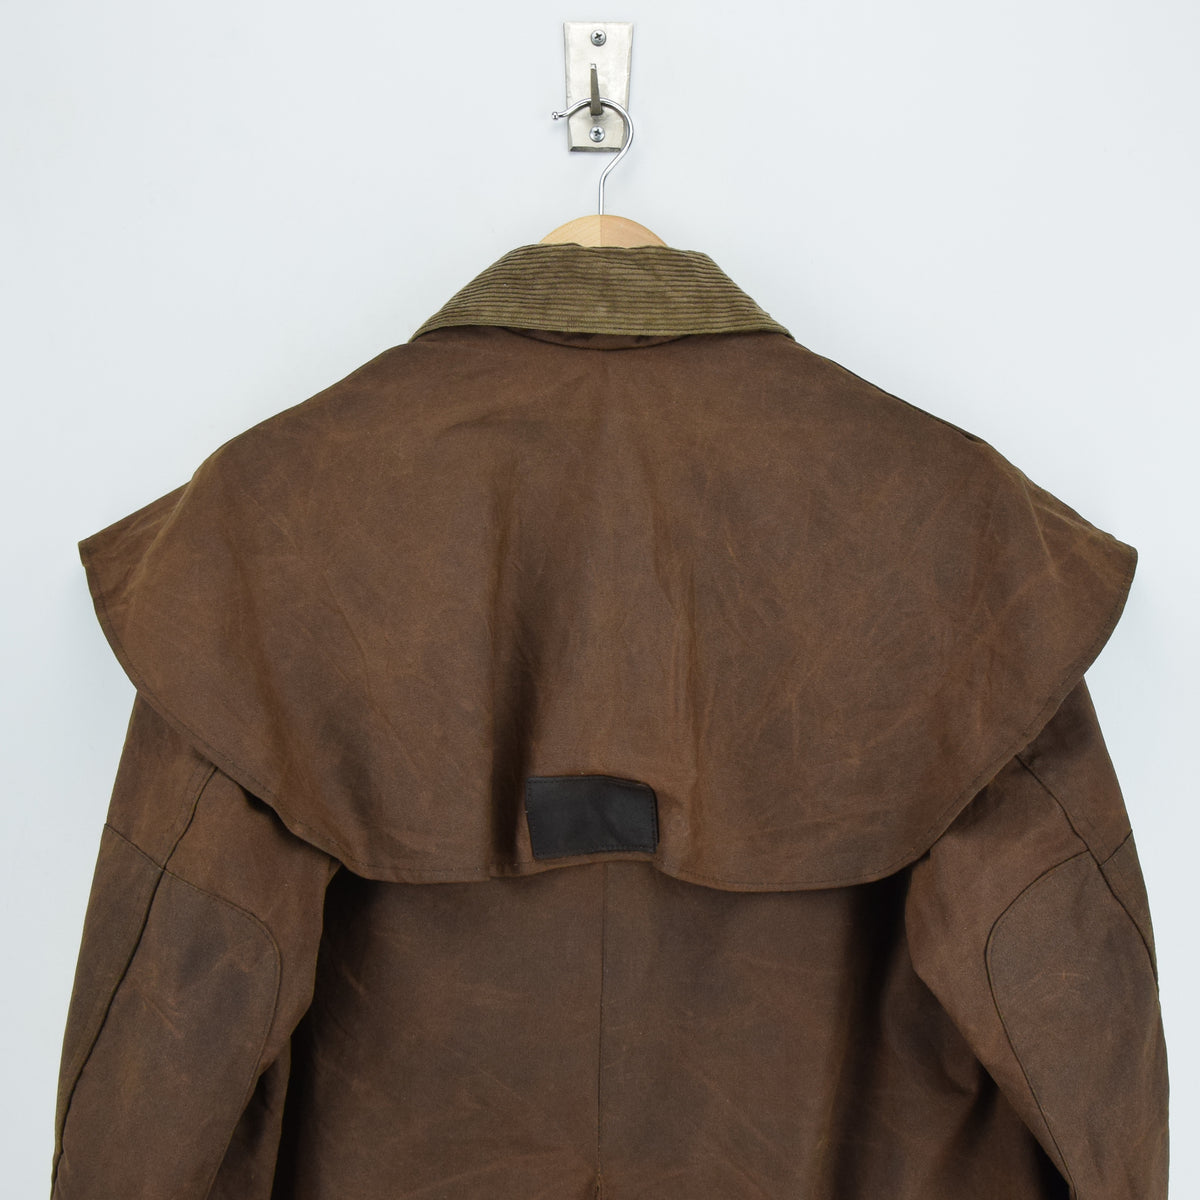 Vintage Backhouse Brown A1250 Stockman's Coat Wax Cotton Riding Jacket S shoulders